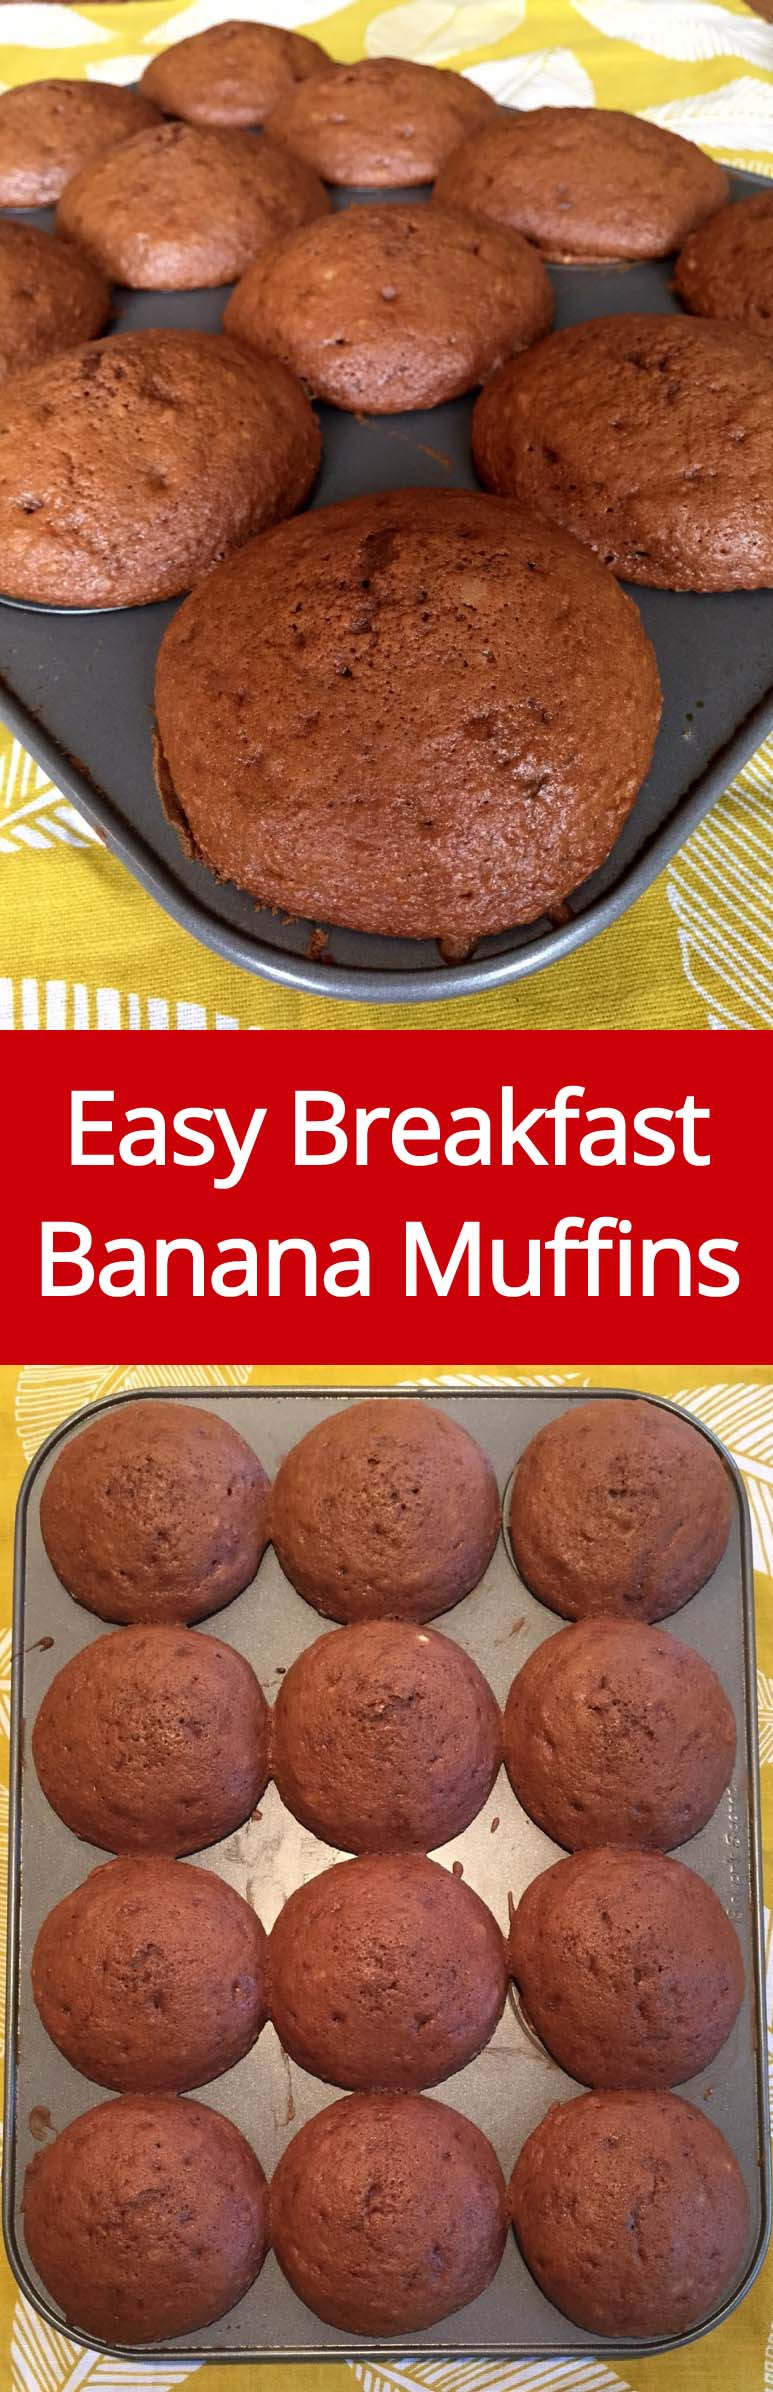 Easy Banana Muffins - these huge muffins are like banana bread in a muffin form! Perfect for breakfast!